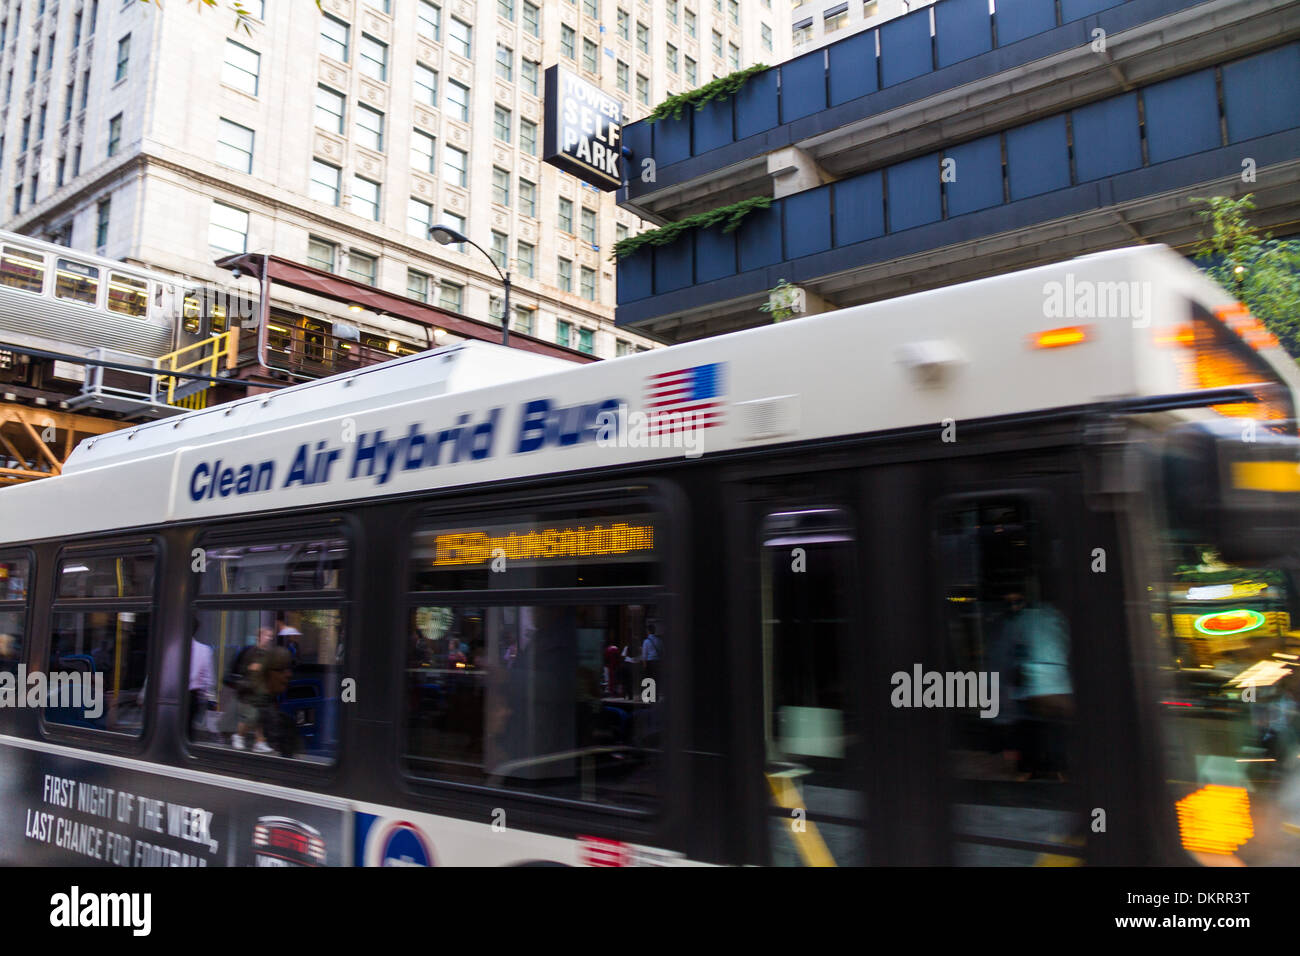 clean air hybrid bus, Chicago - Stock Image